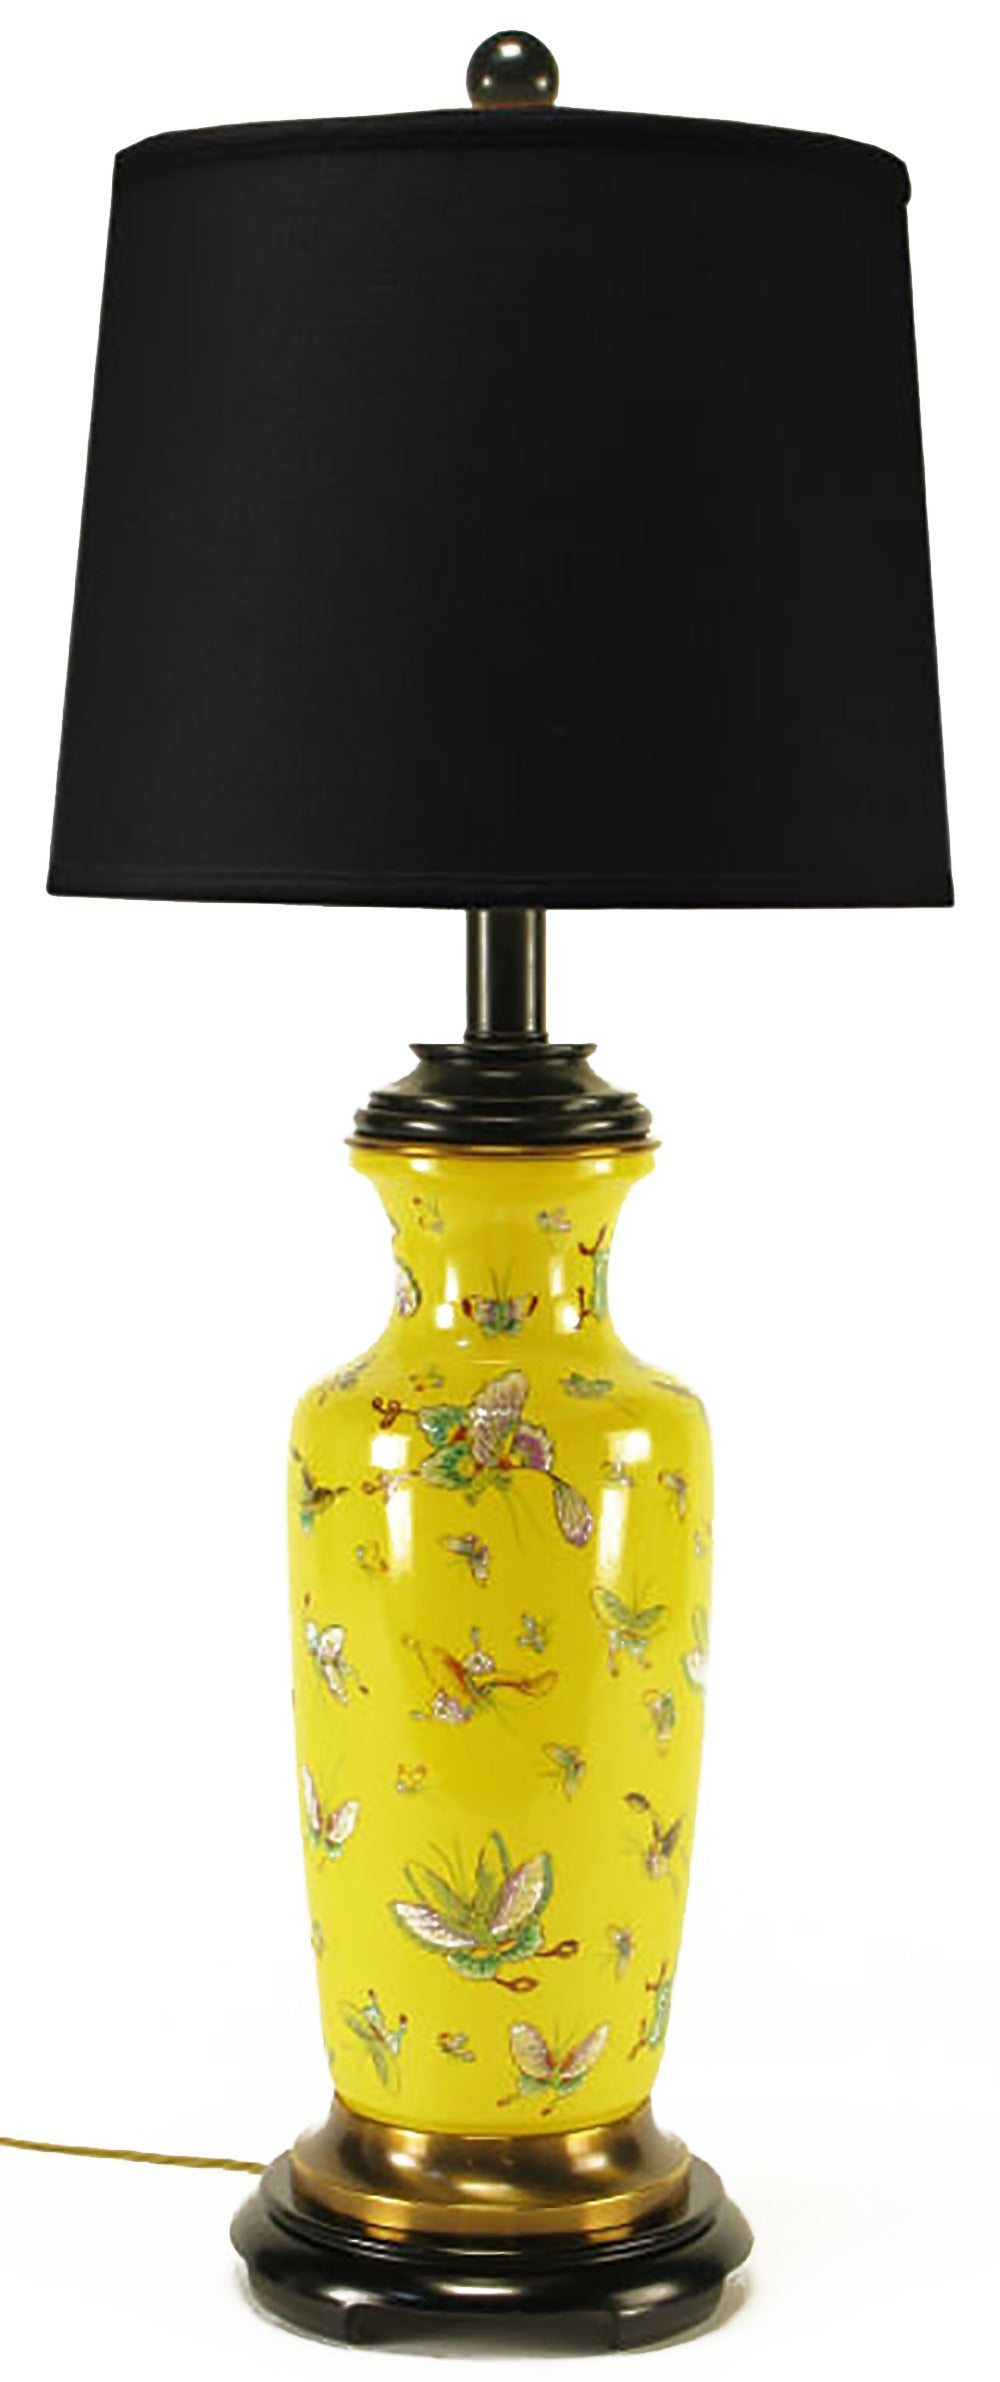 replacements shades glass astounding yellow marvelous colorful lights silver frosted lamp light with pendant shade